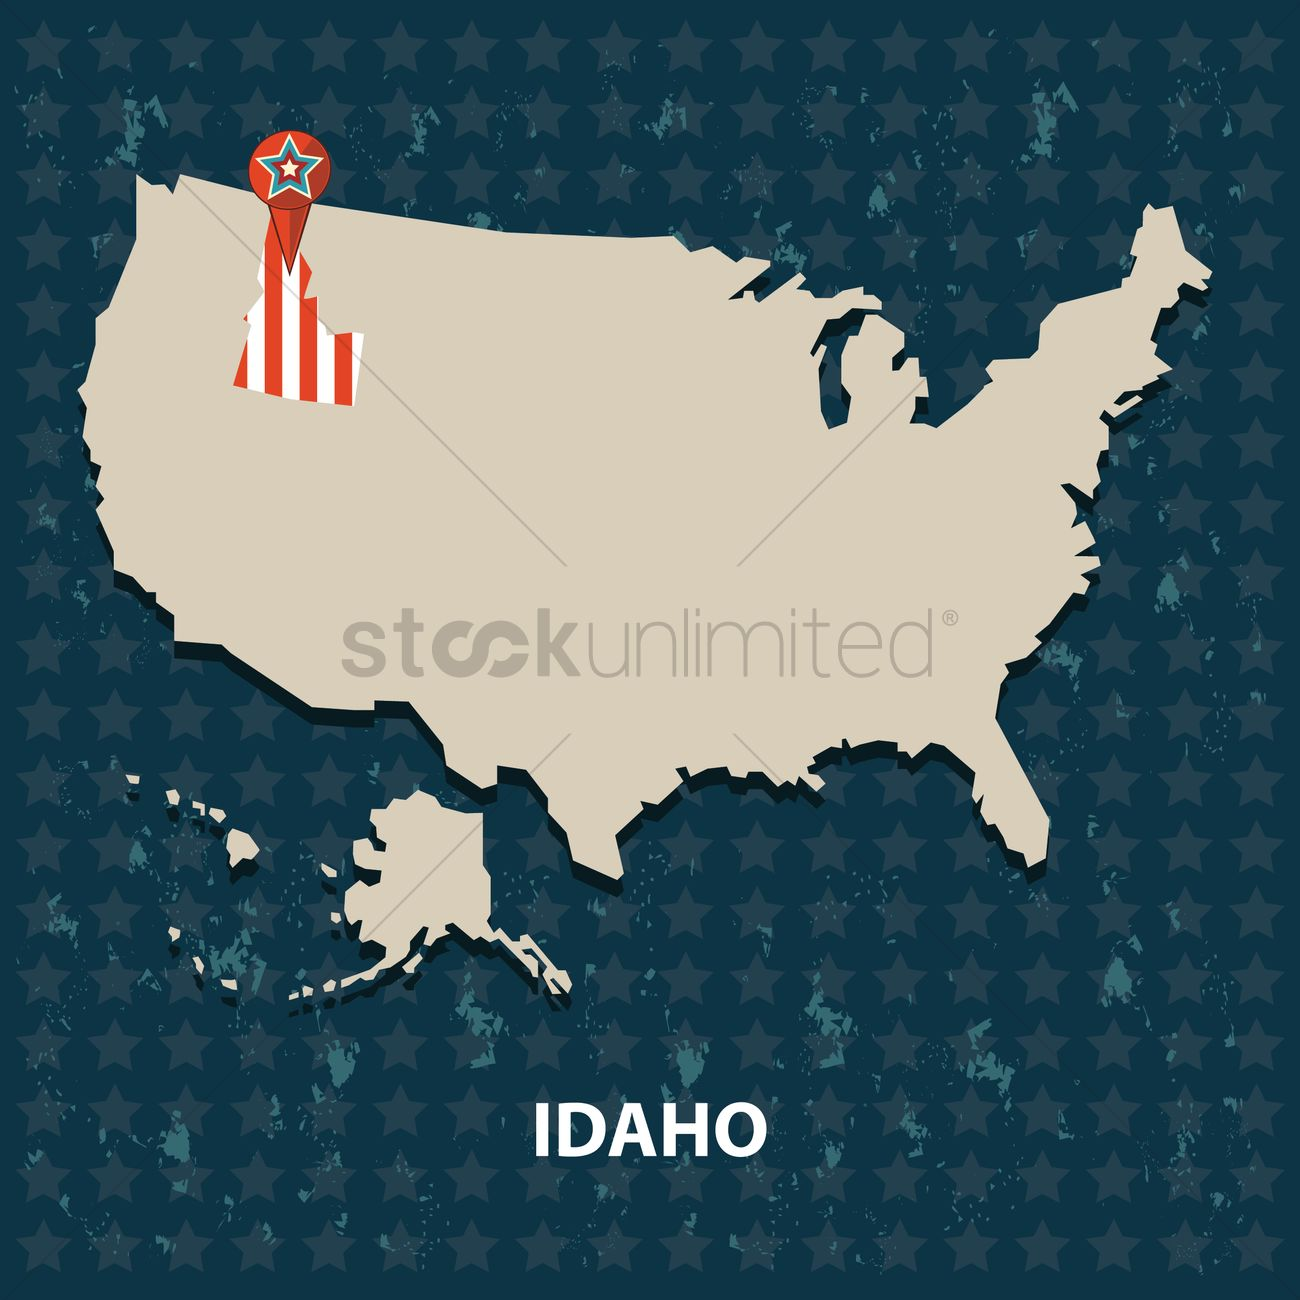 Idaho state on the map of usa Vector Image - 1552241   StockUnlimited